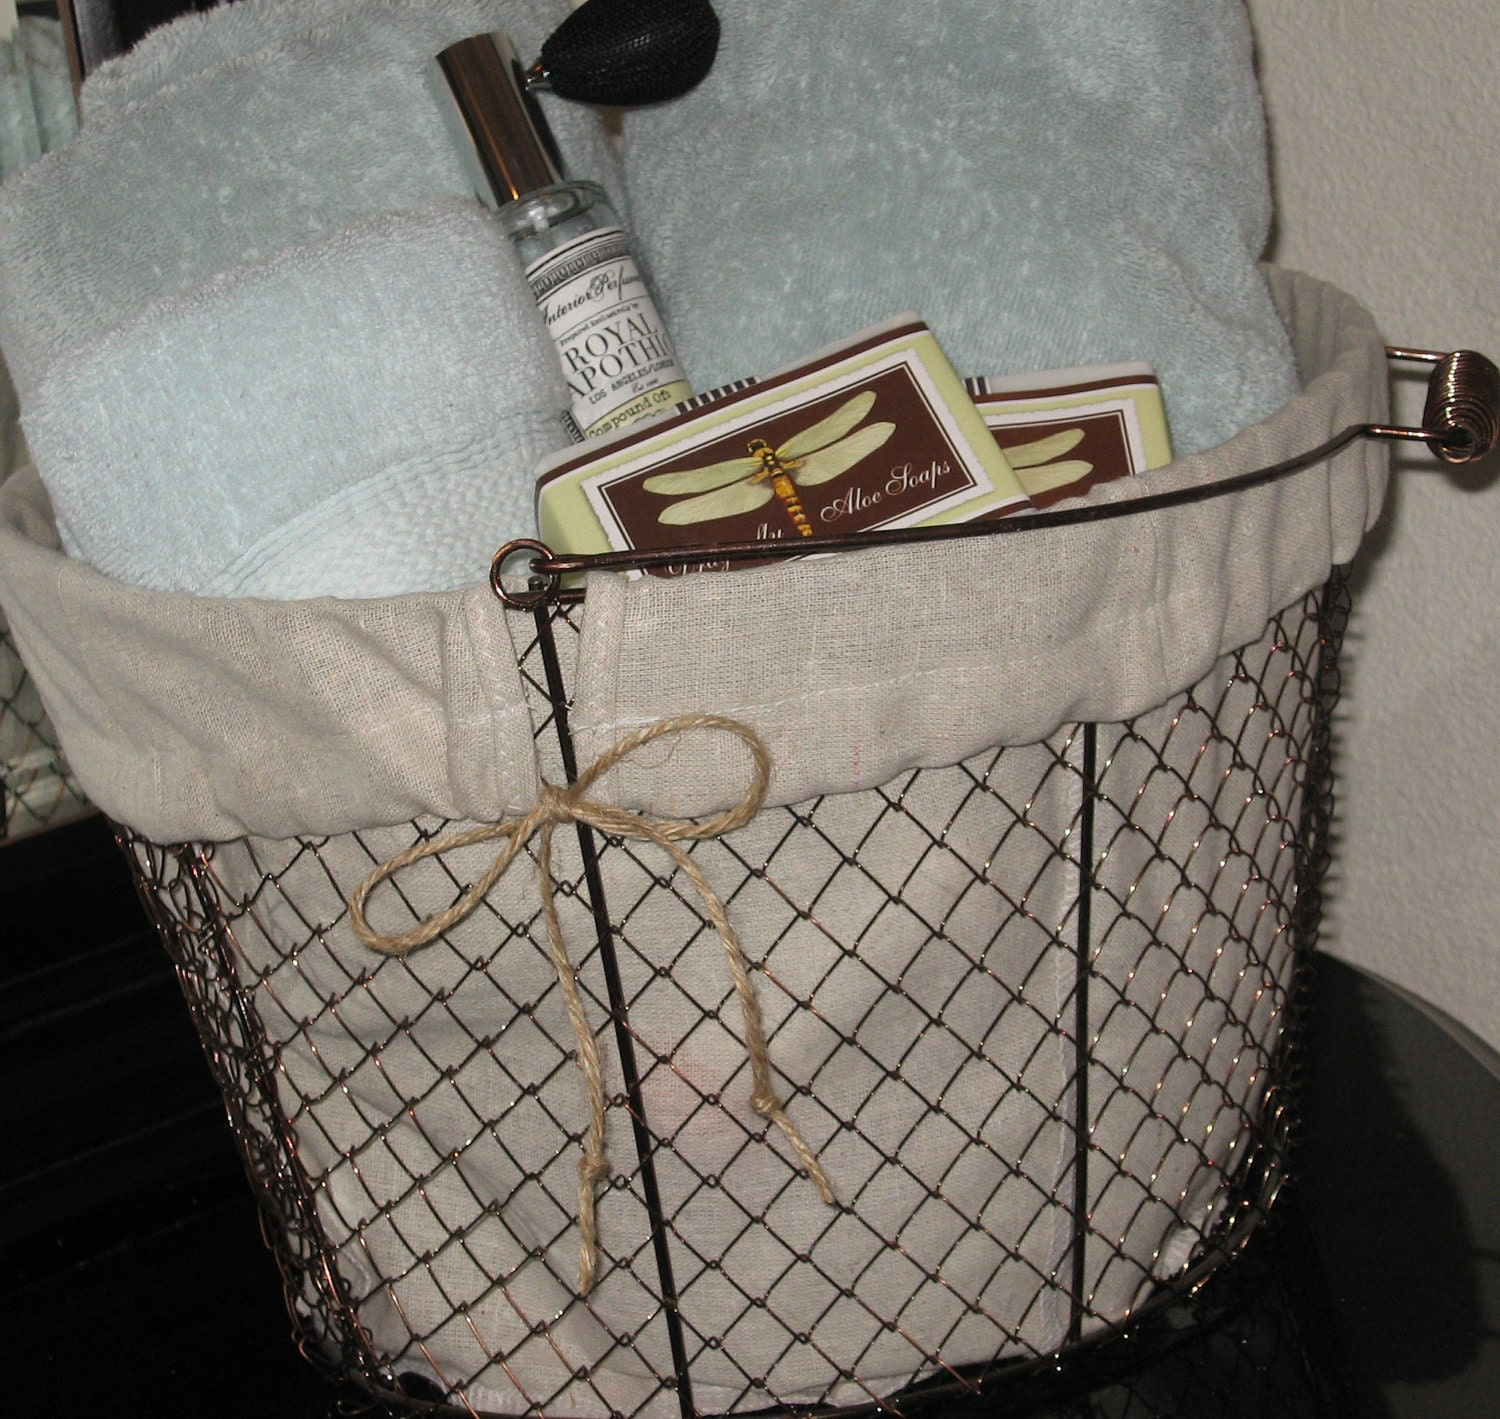 Decorating Bathroom Baskets Towels : Farmhouse wire basket bathroom decor office